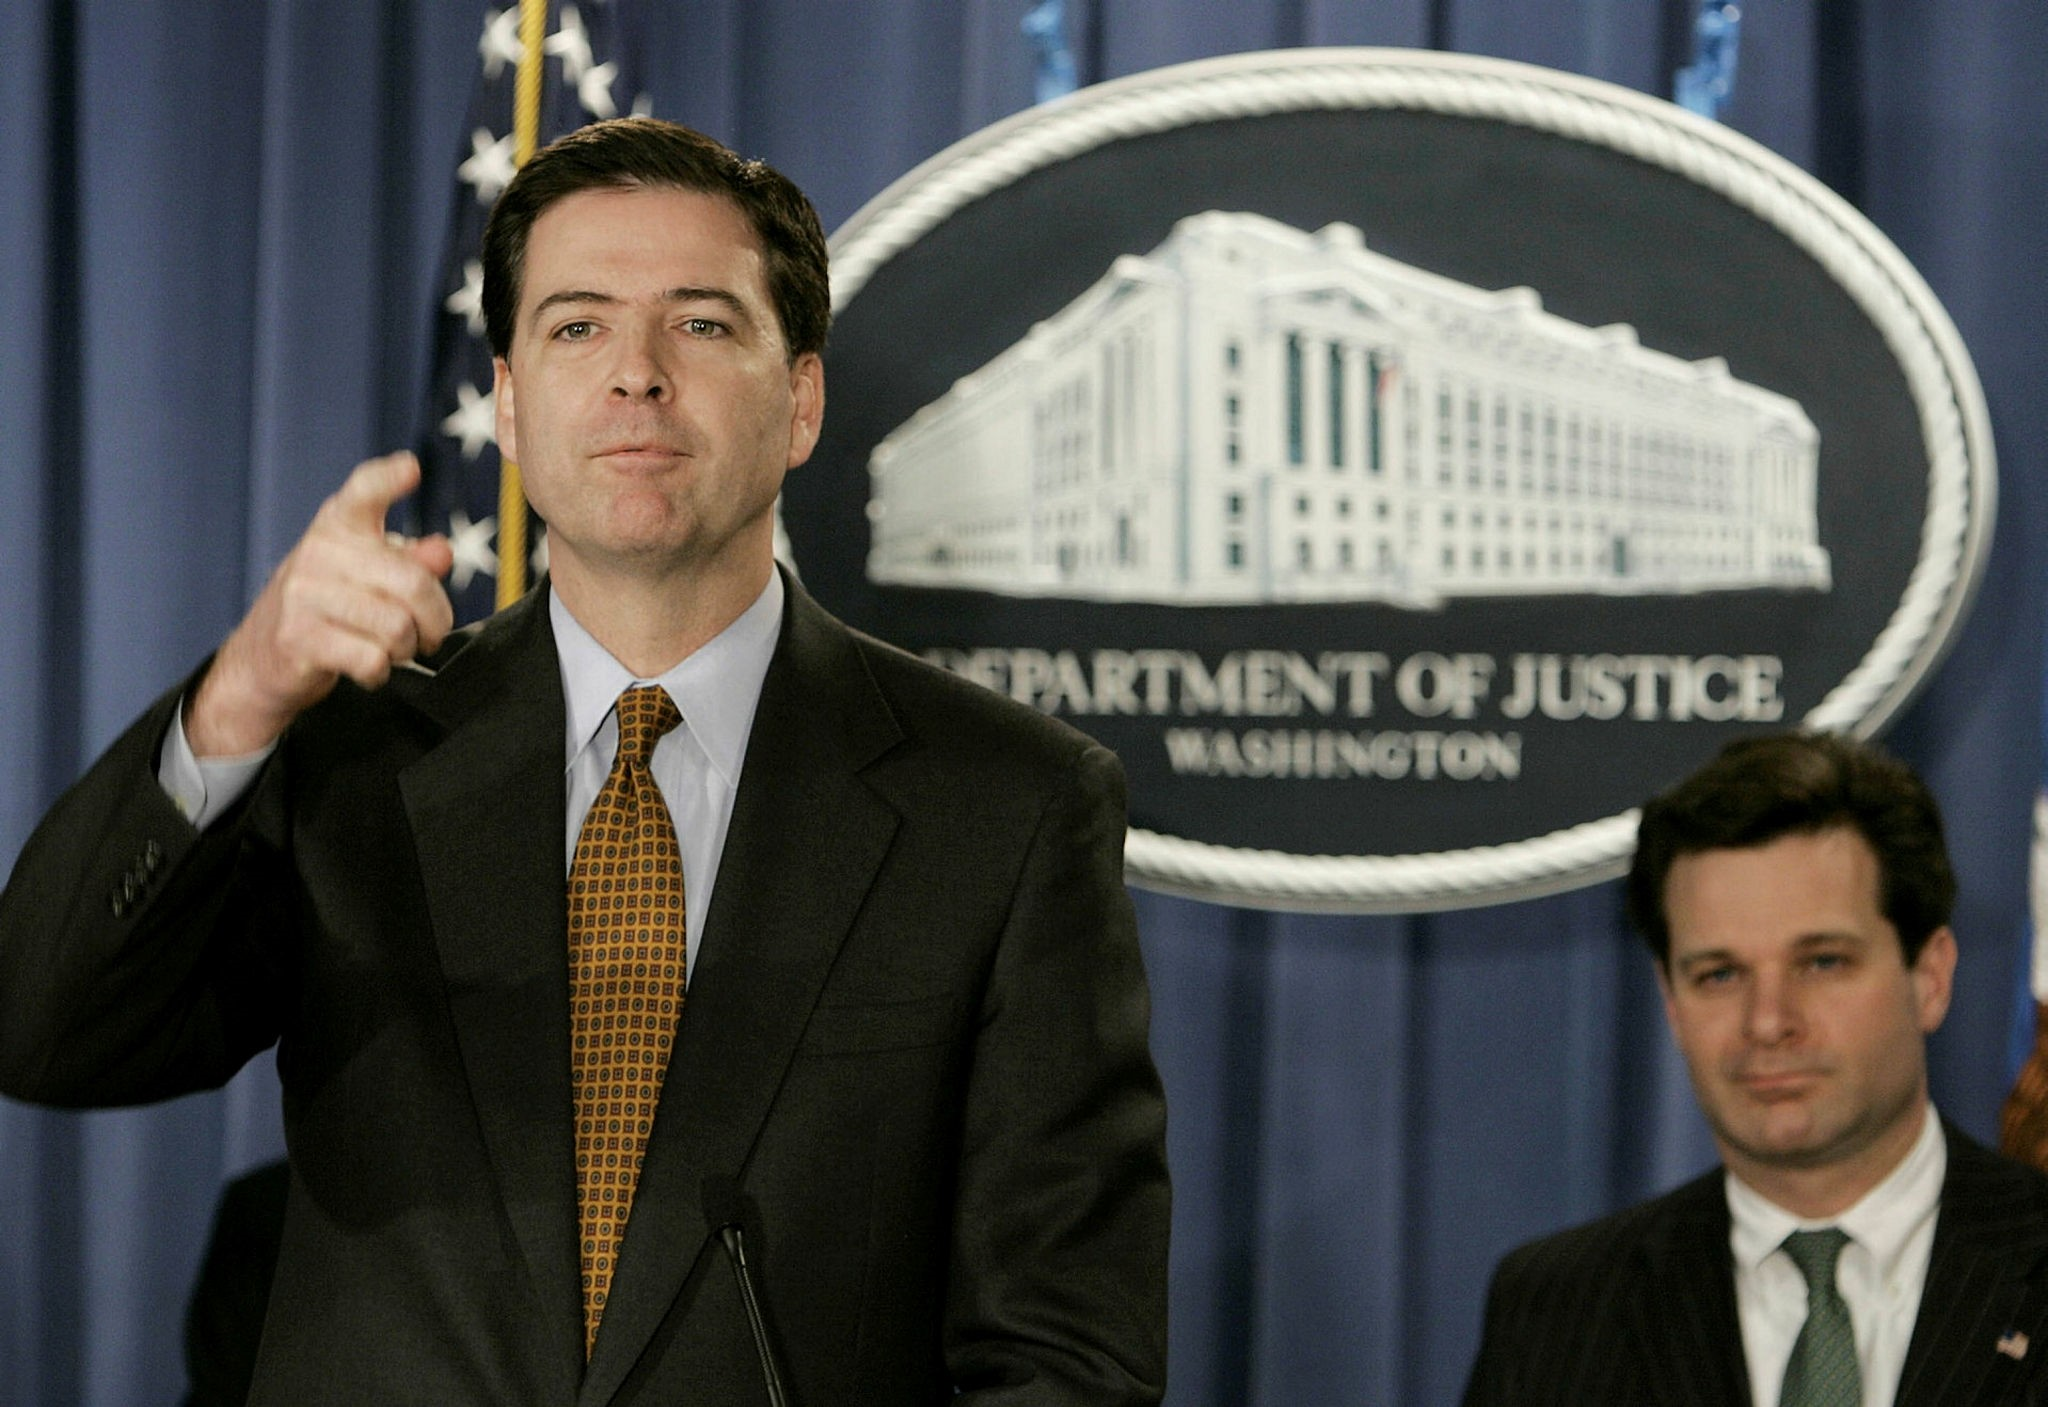 This file photo taken on December 15, 2004 shows Deputy US Attorney General James B. Comey (L) at a news conference with Assistant Attorney General Christopher Wray (R) at the Justice Department in Washington, DC. (AFP Photo)